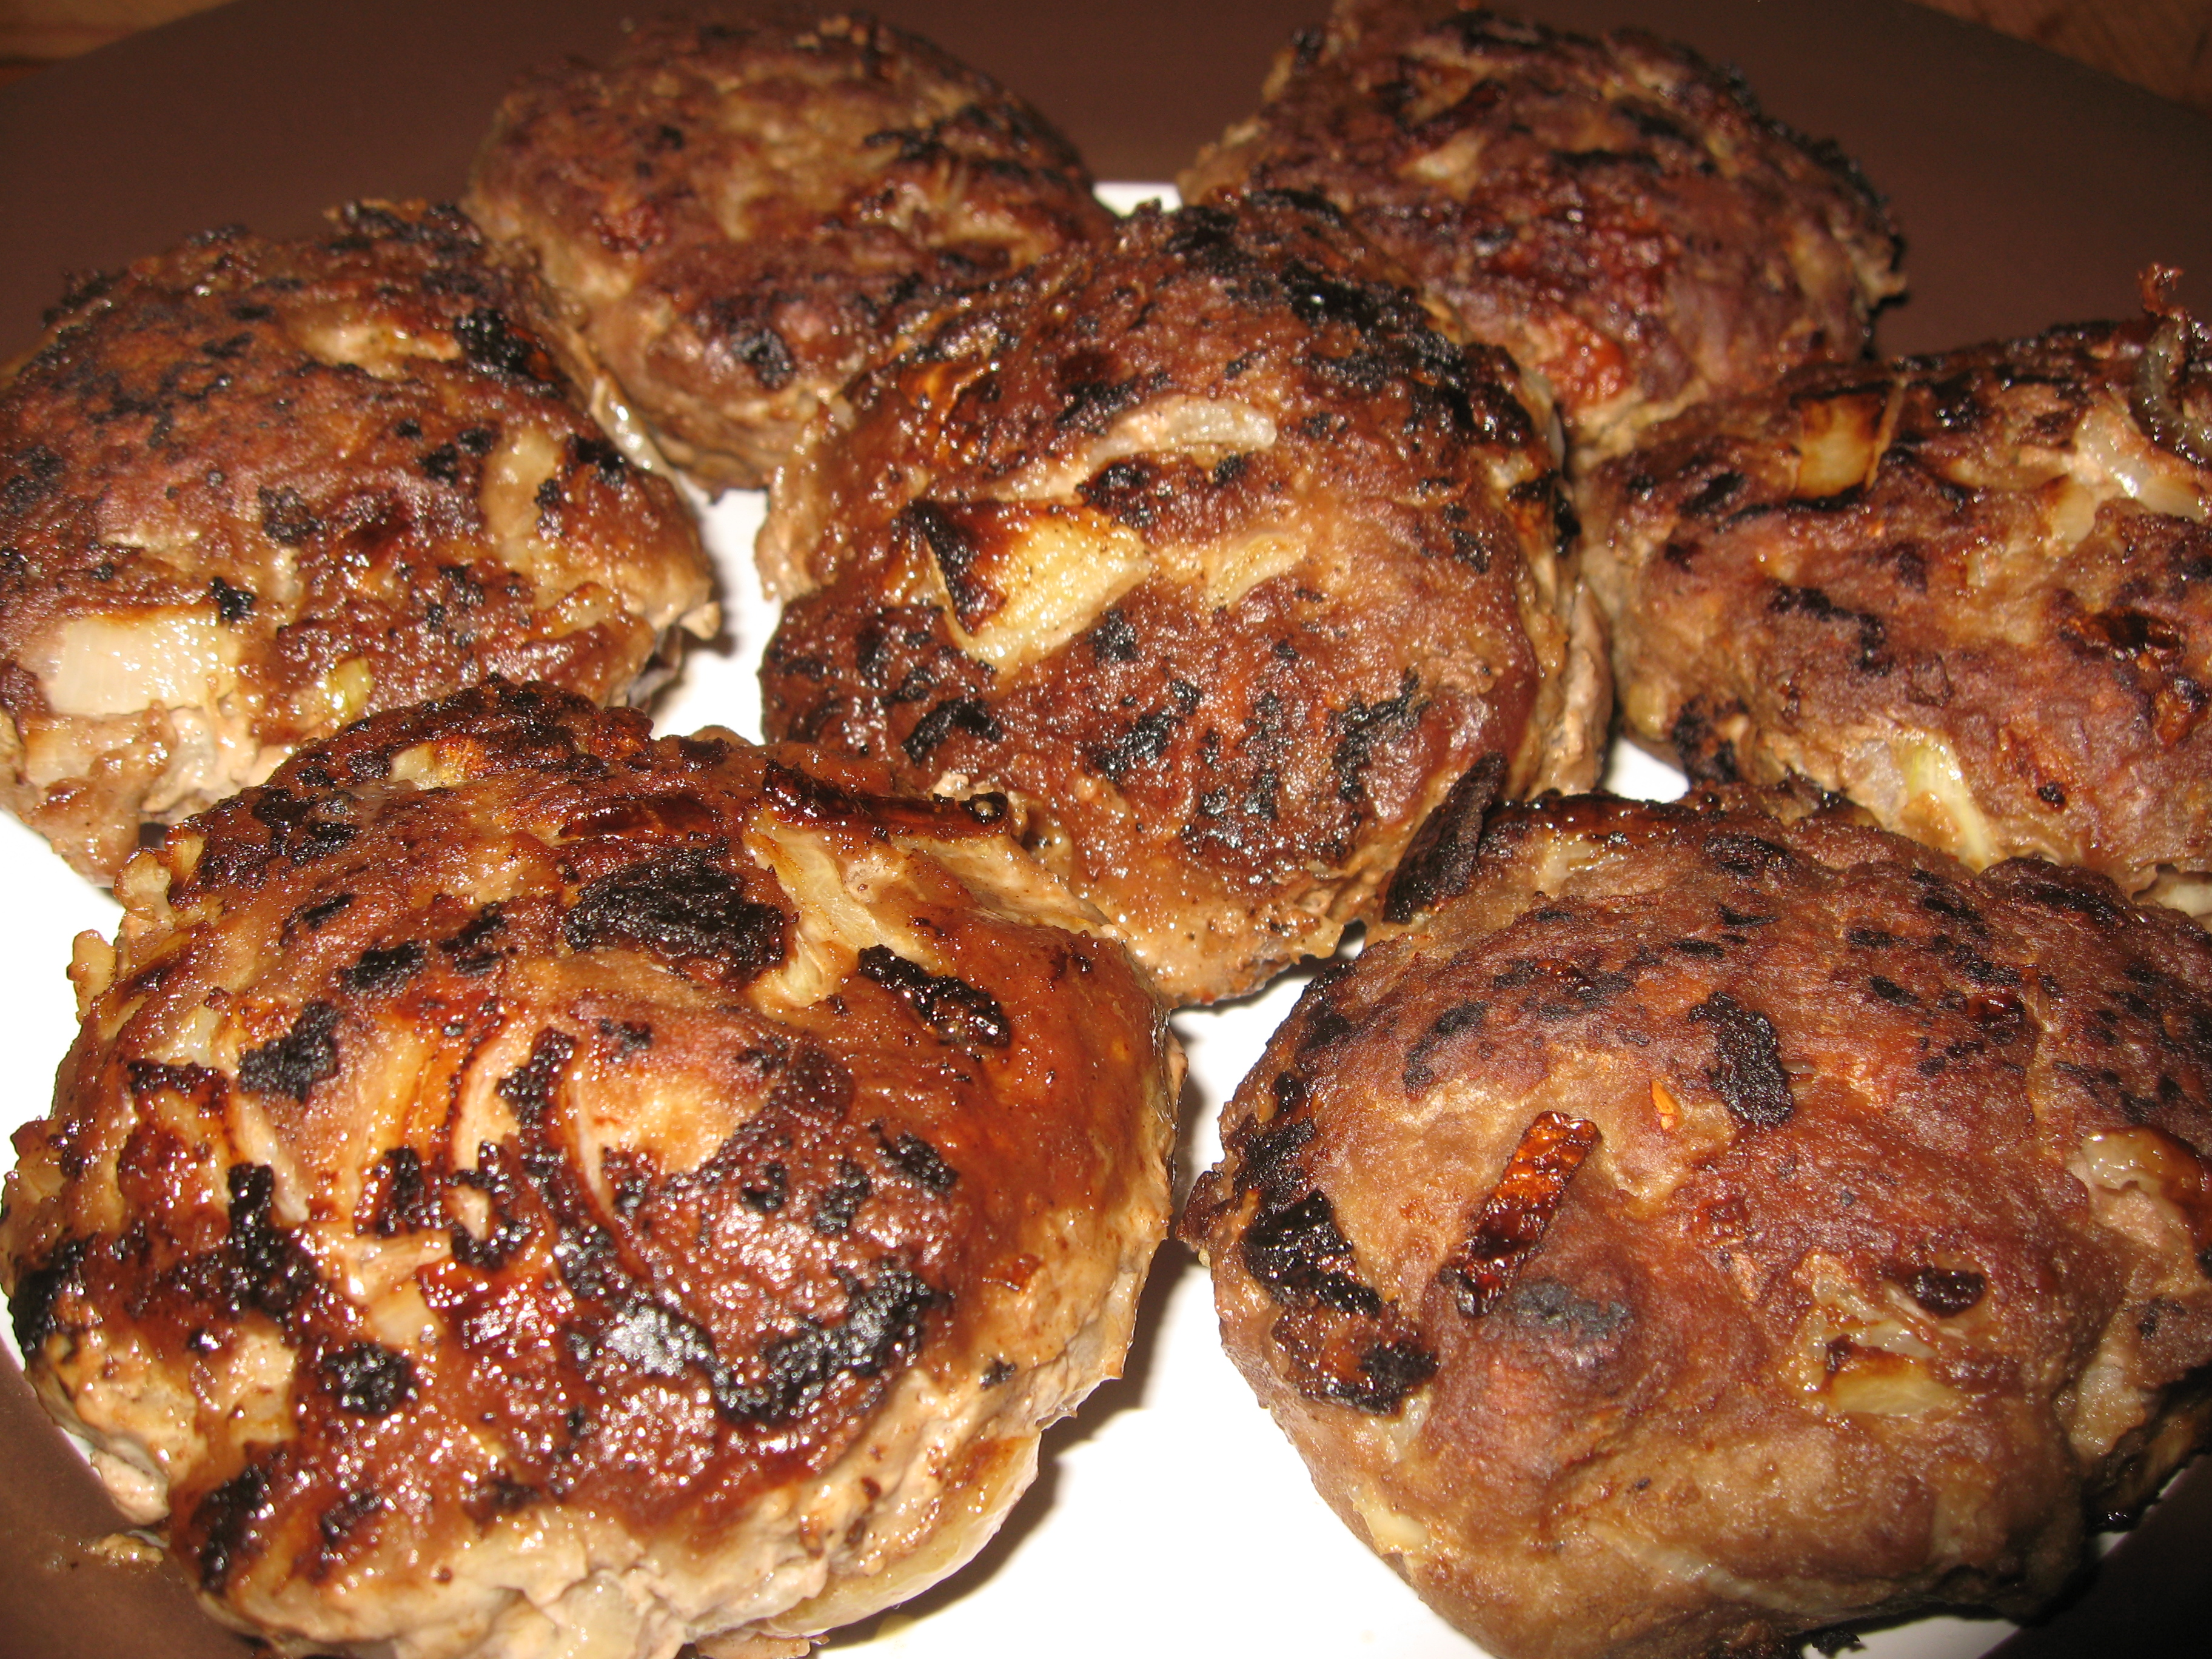 Recipes Course Main Dish Meat - Other Frikadeller